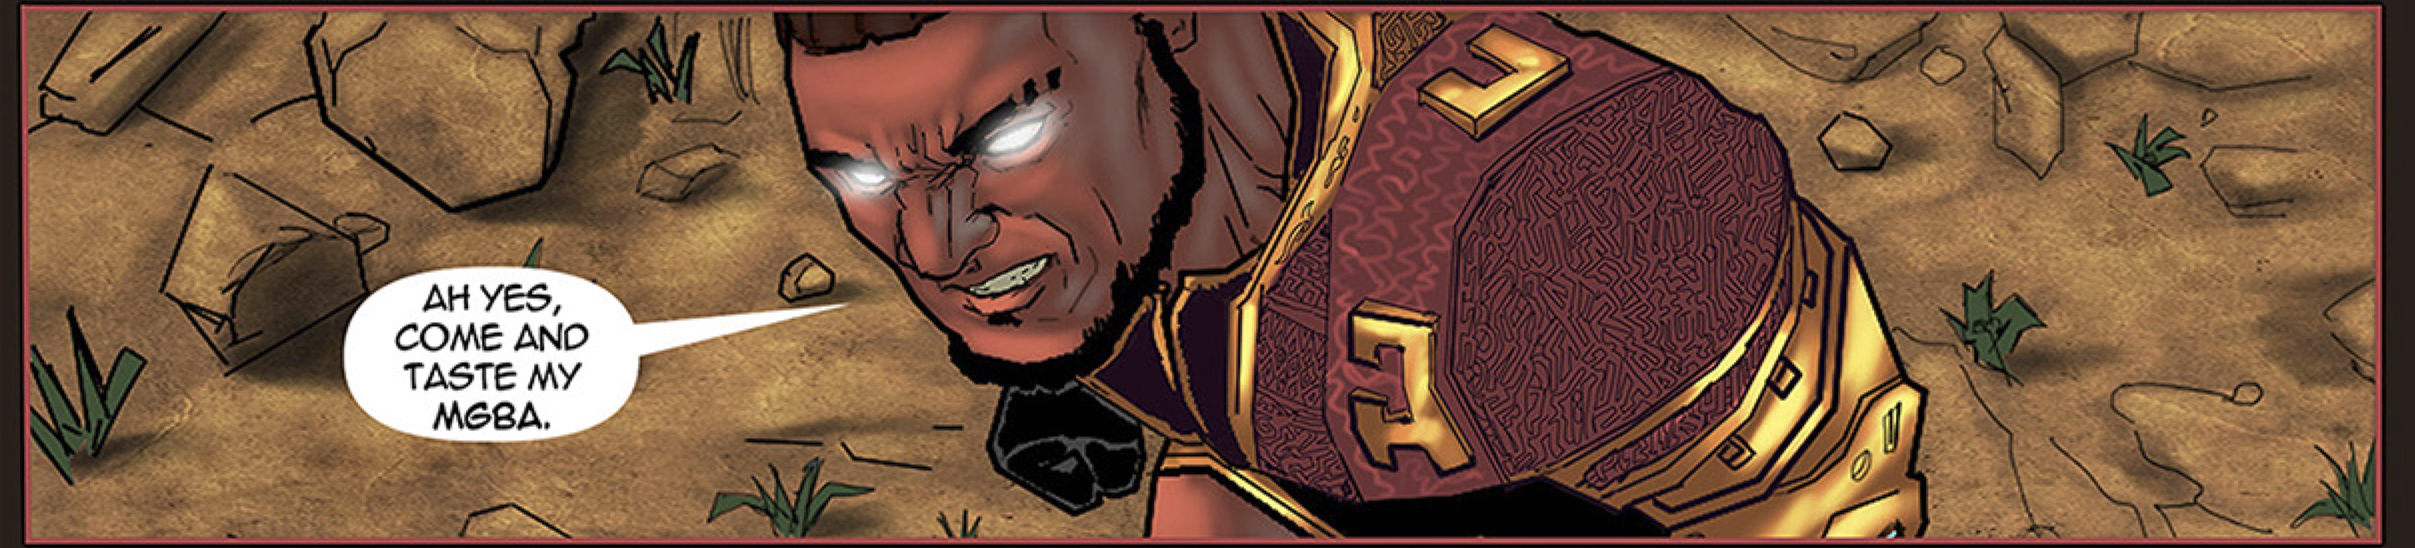 Alaric asking his attackers to come and taste his fighting style in the African comic Scion: Immortal